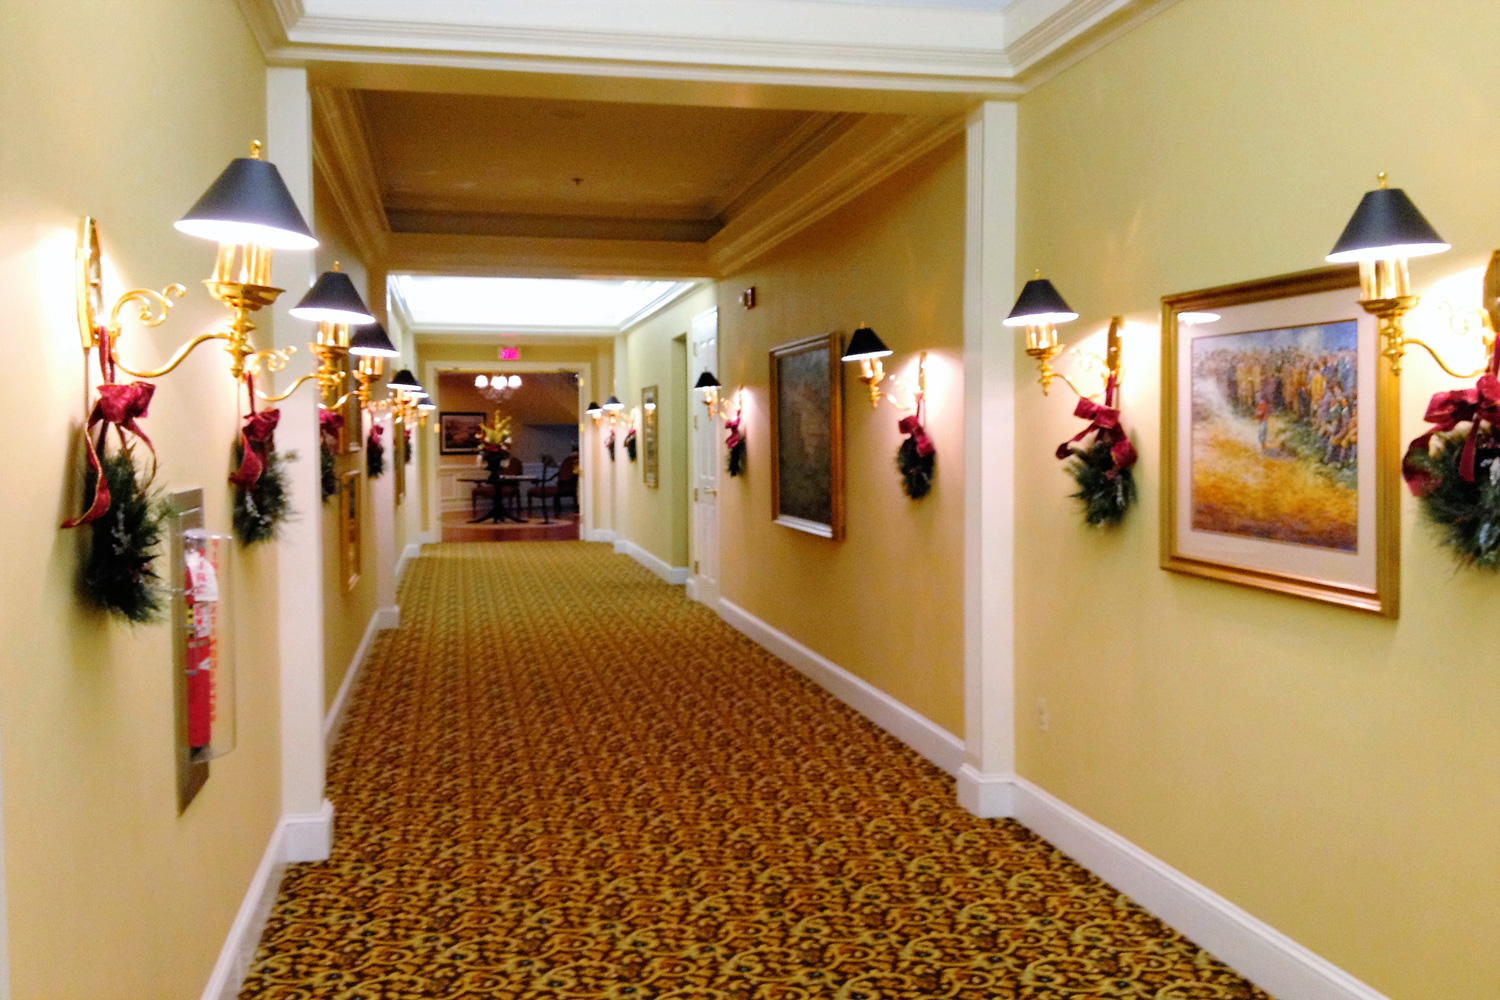 office holiday decor. Office Holiday Decor. Unique Decoration Great Valley Decor Mainline Pa To